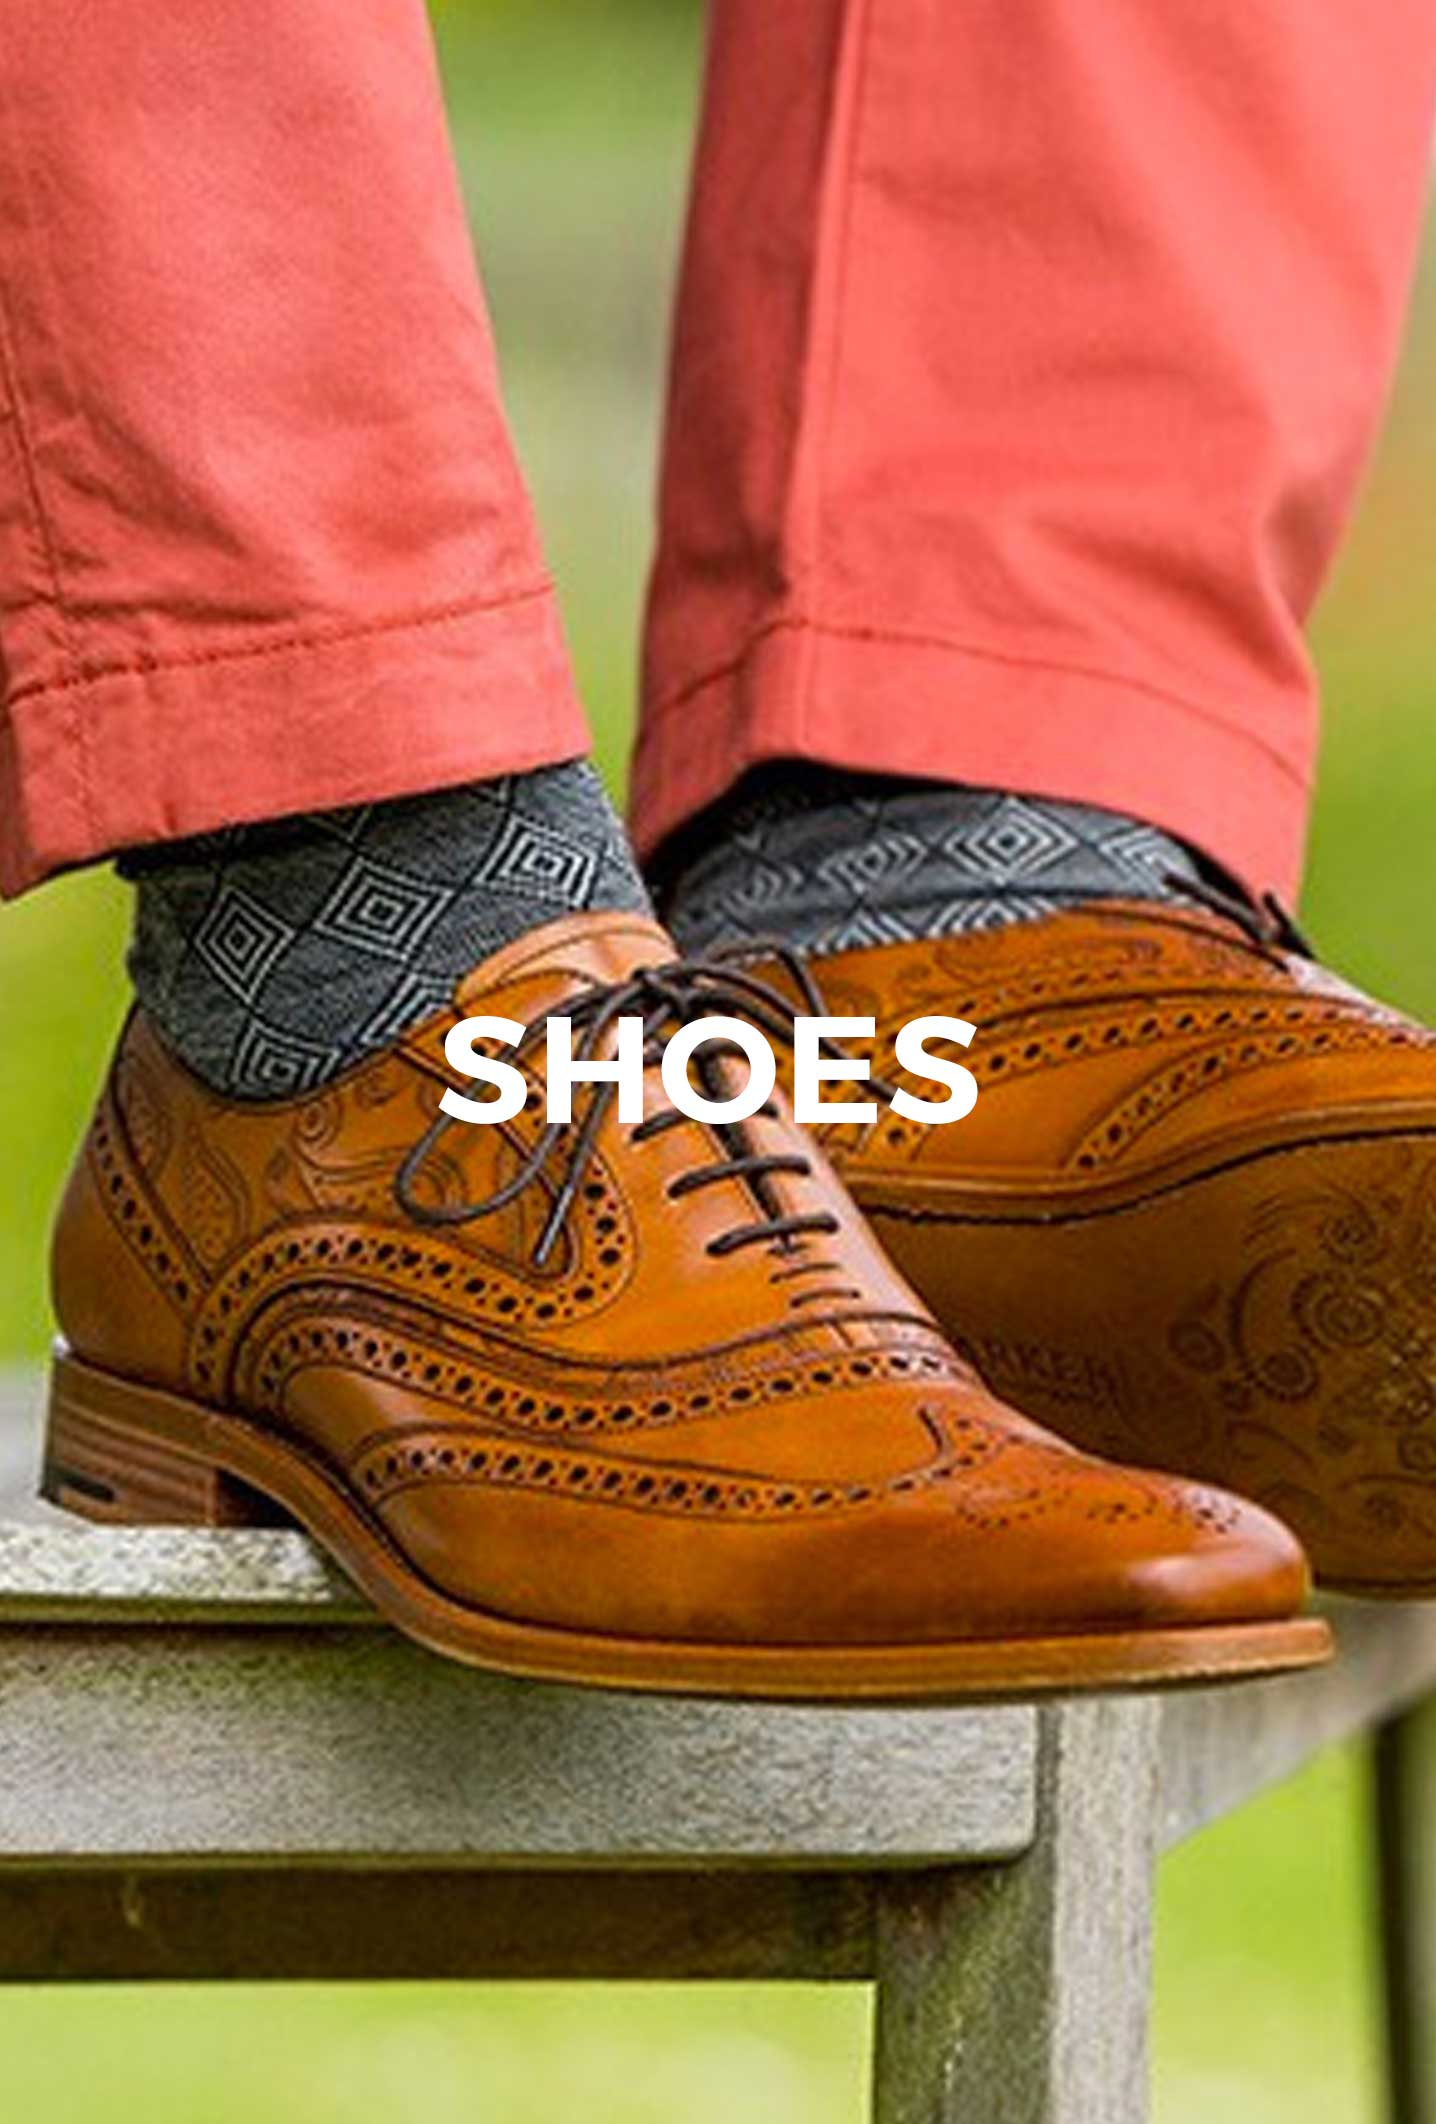 106d55150fc We have a carefully selected range of footwear in-store from fine shoes for  formal occasions to dress-down casual loafers for leisure.